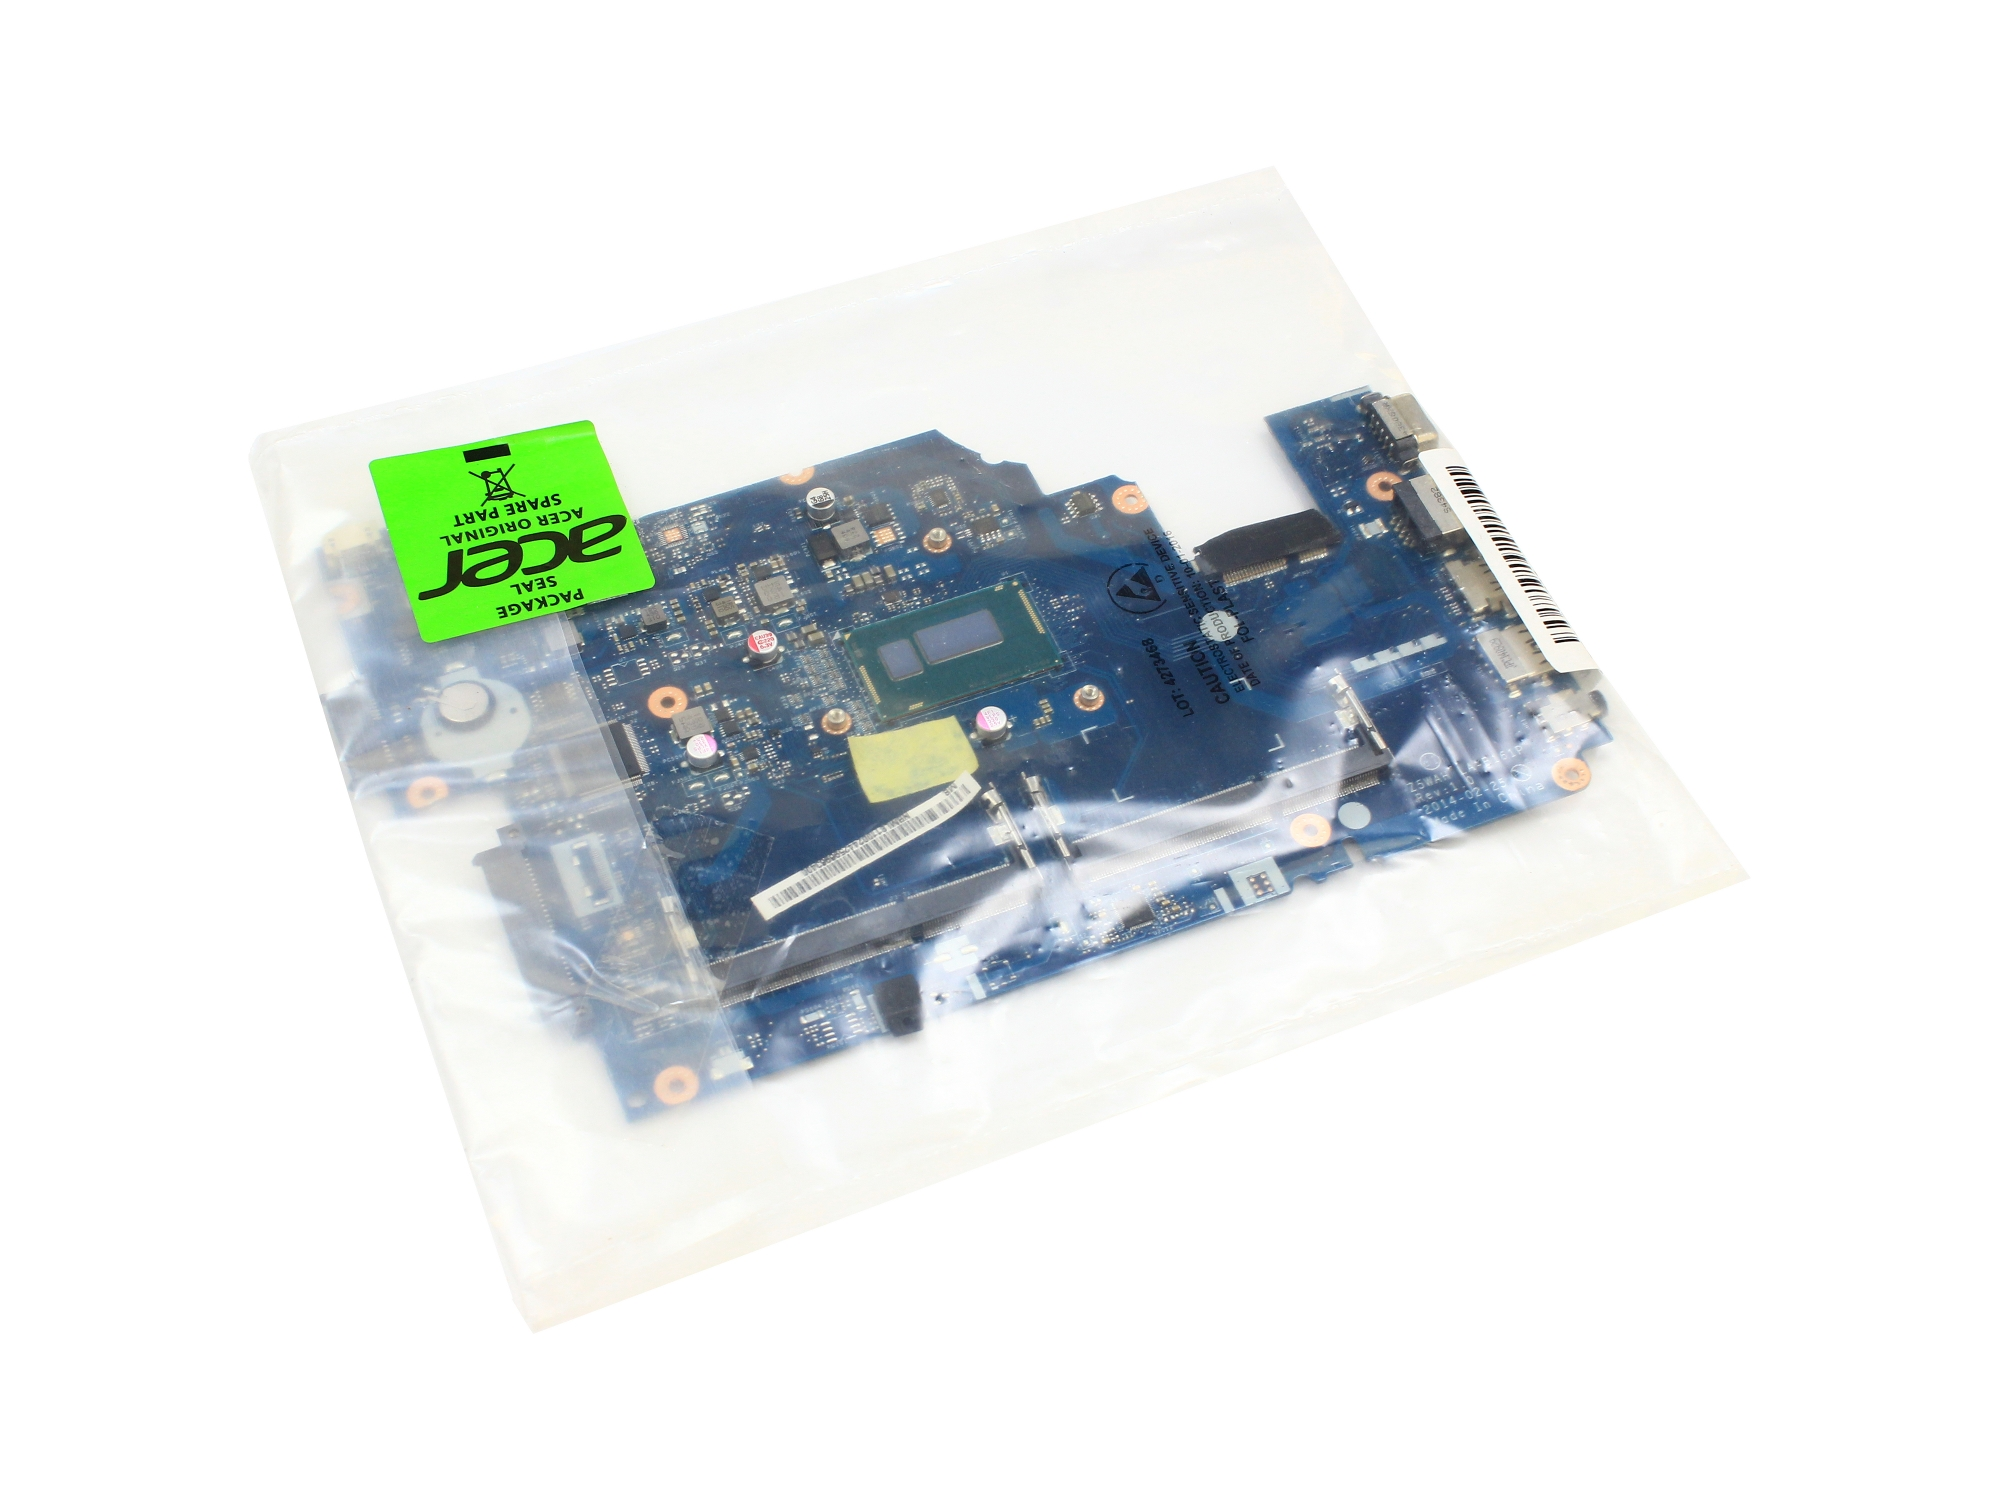 Placa de baza Acer Extensa 2510 model NB.ML811.002 cu procesor Intel i3-4030u